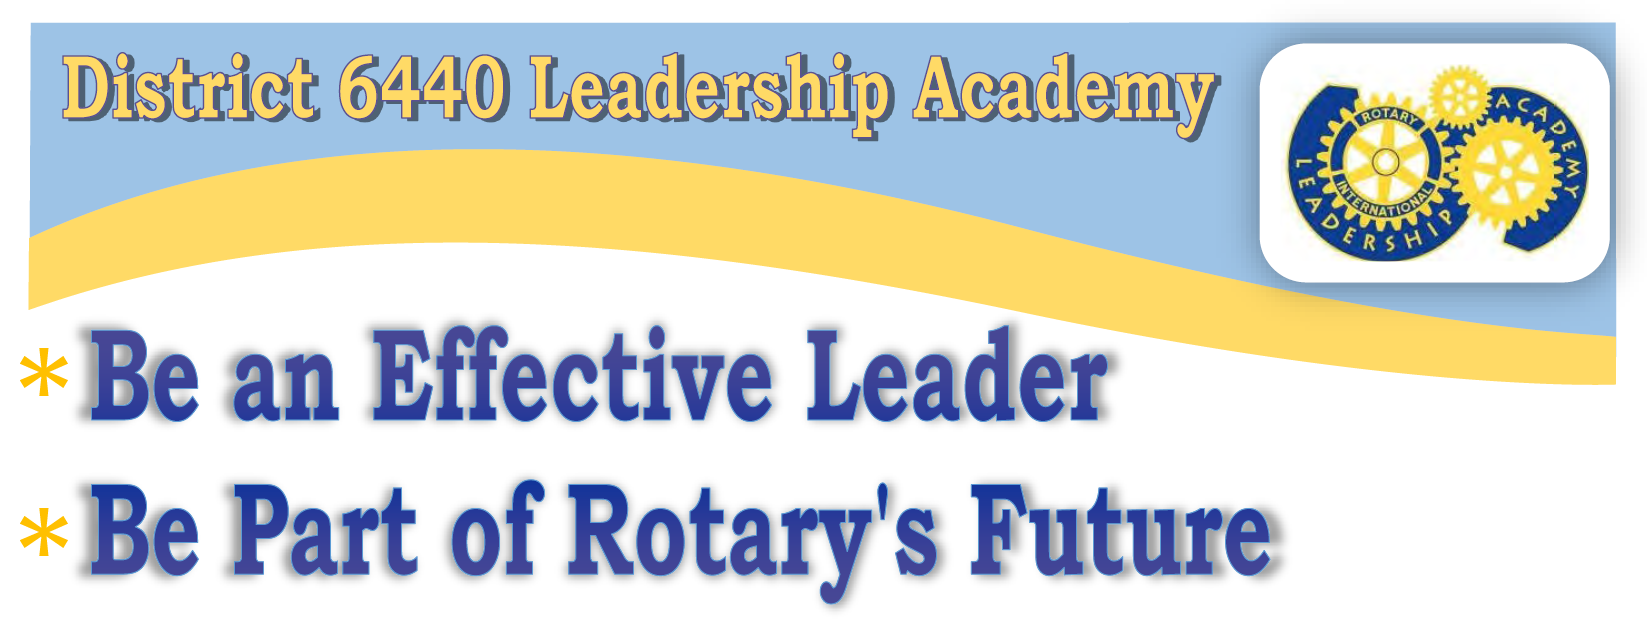 District Leadership Academy Rotary District 6440